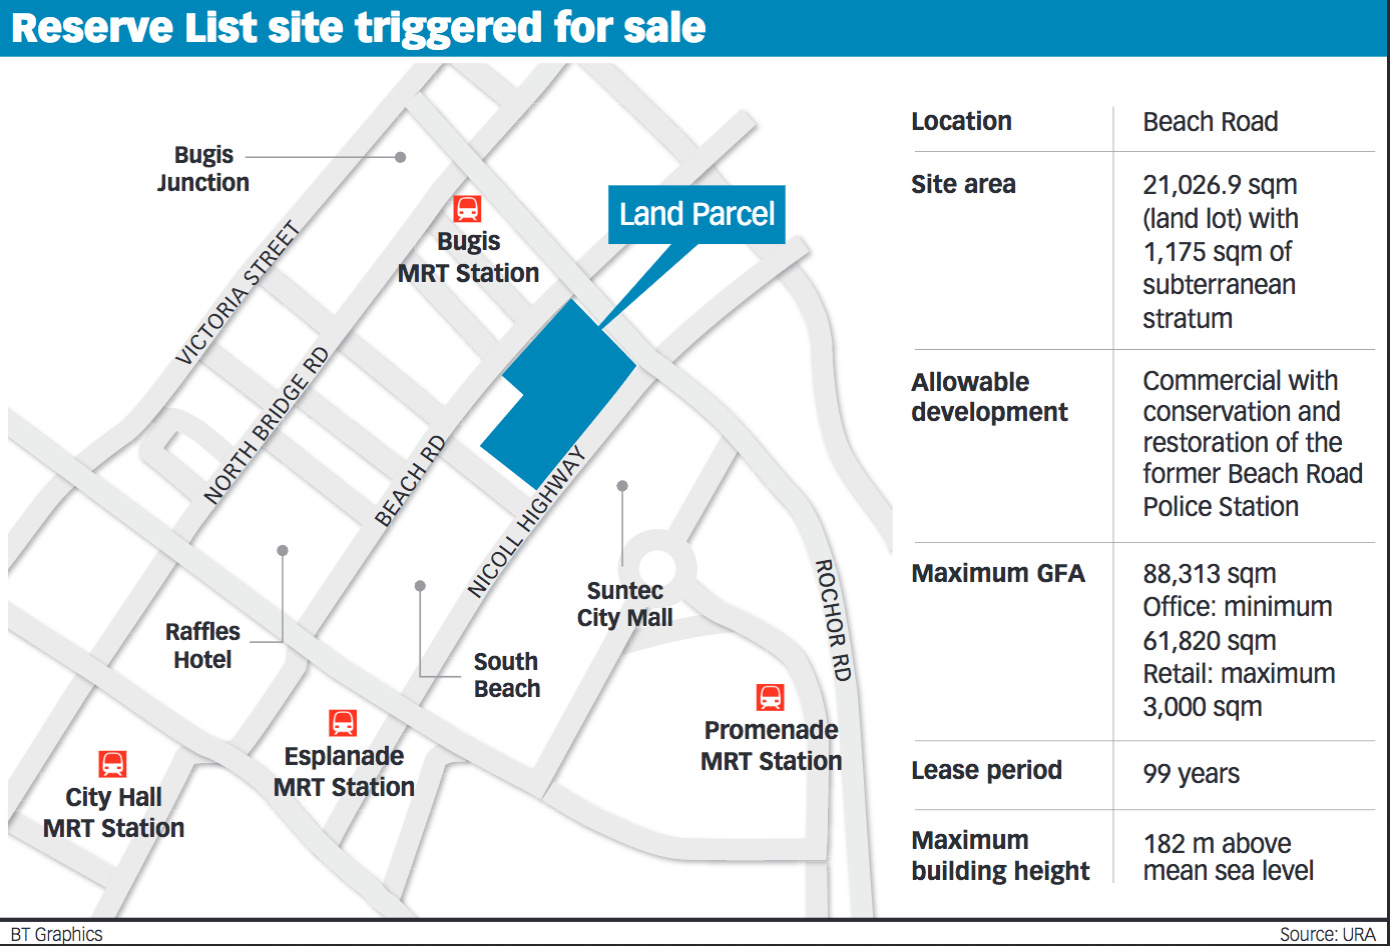 singapore-office-rent-sale-20170622-BT-real-estate/commercial-site-at-beach-road-triggered-for-public-tender